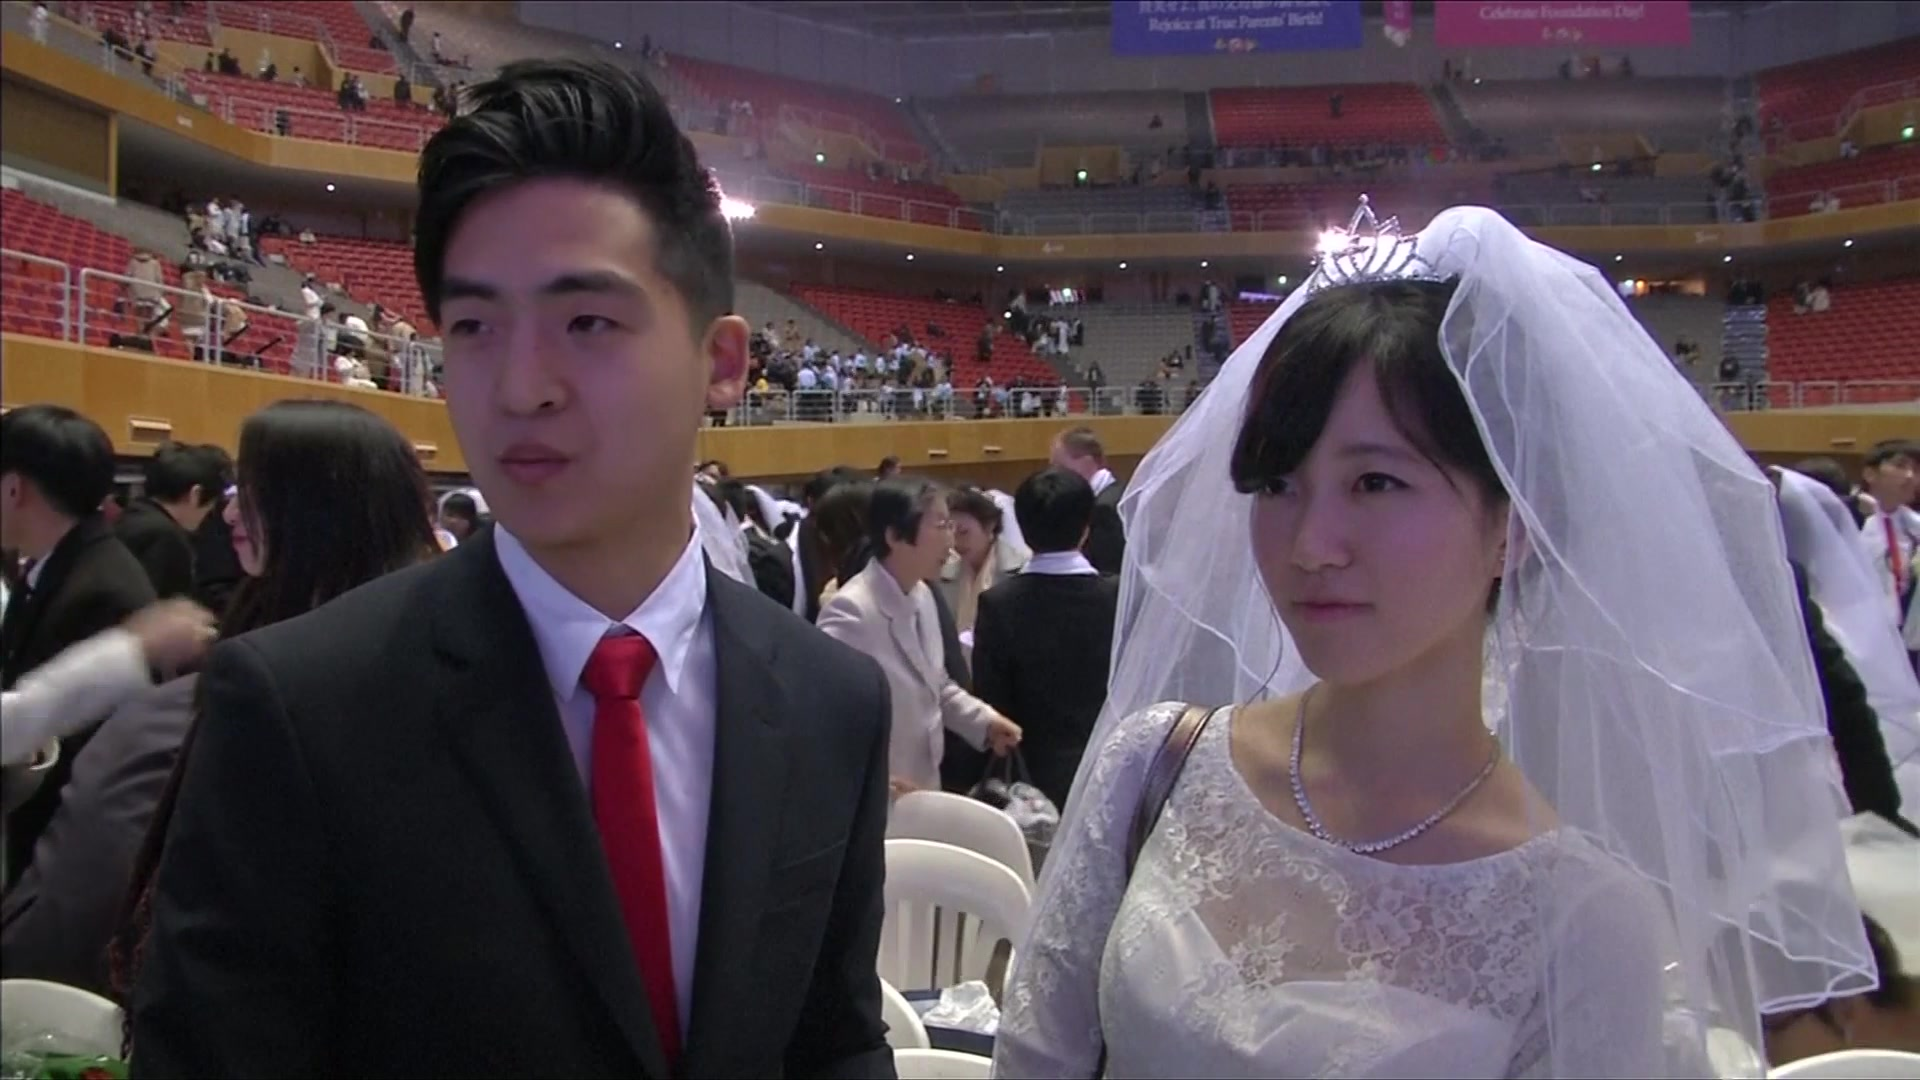 Thousands Tie the Knot in South Korea's Mass Wedding